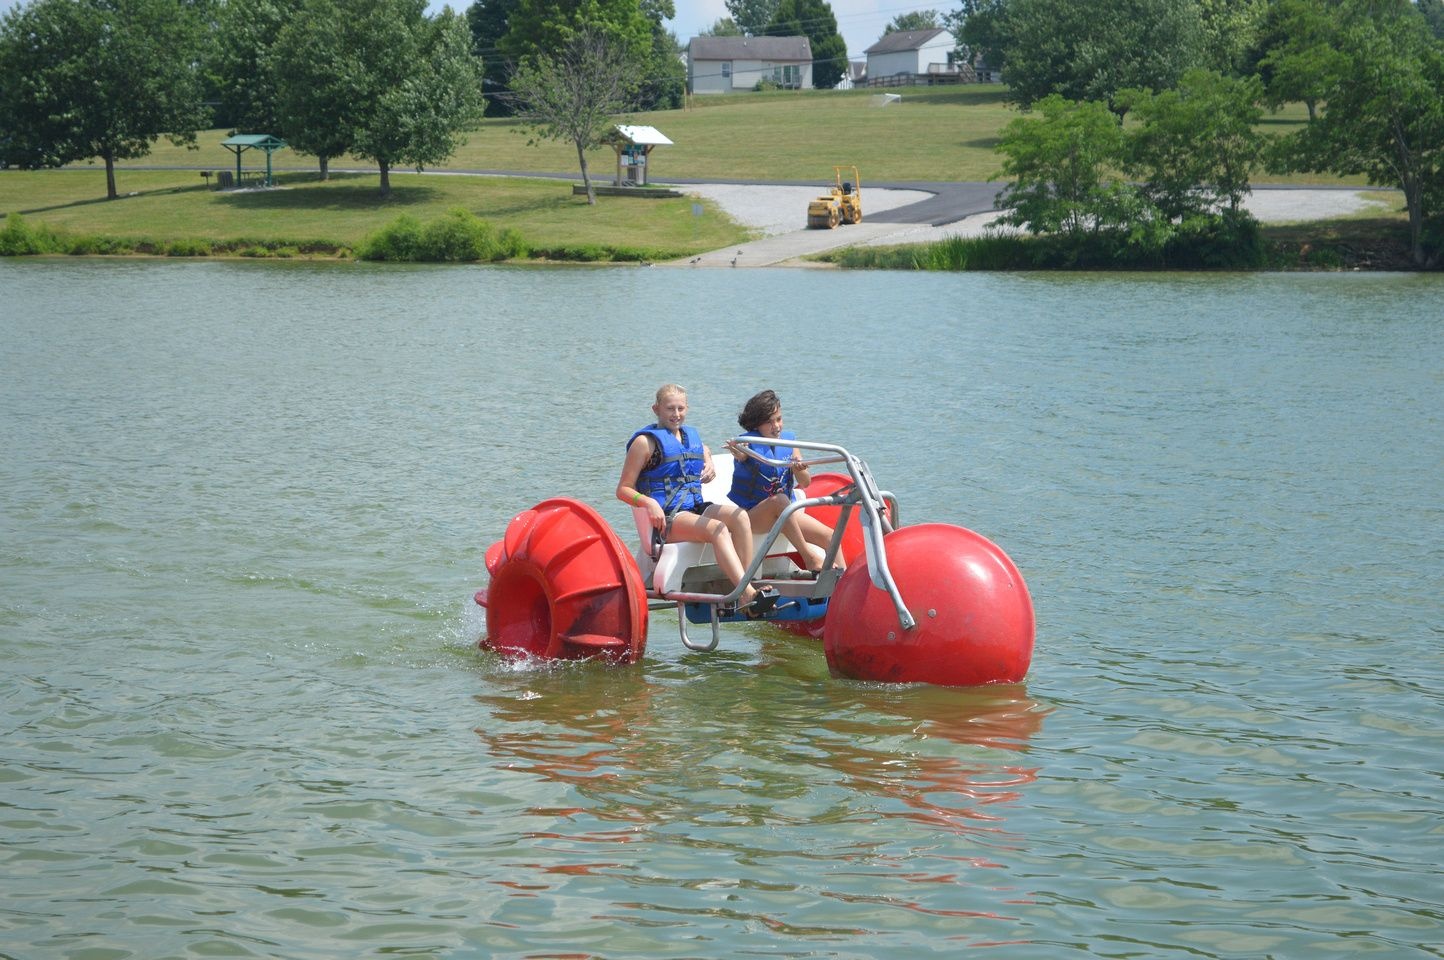 AquaCycle Water Trikes at camps, campgrounds, resorts